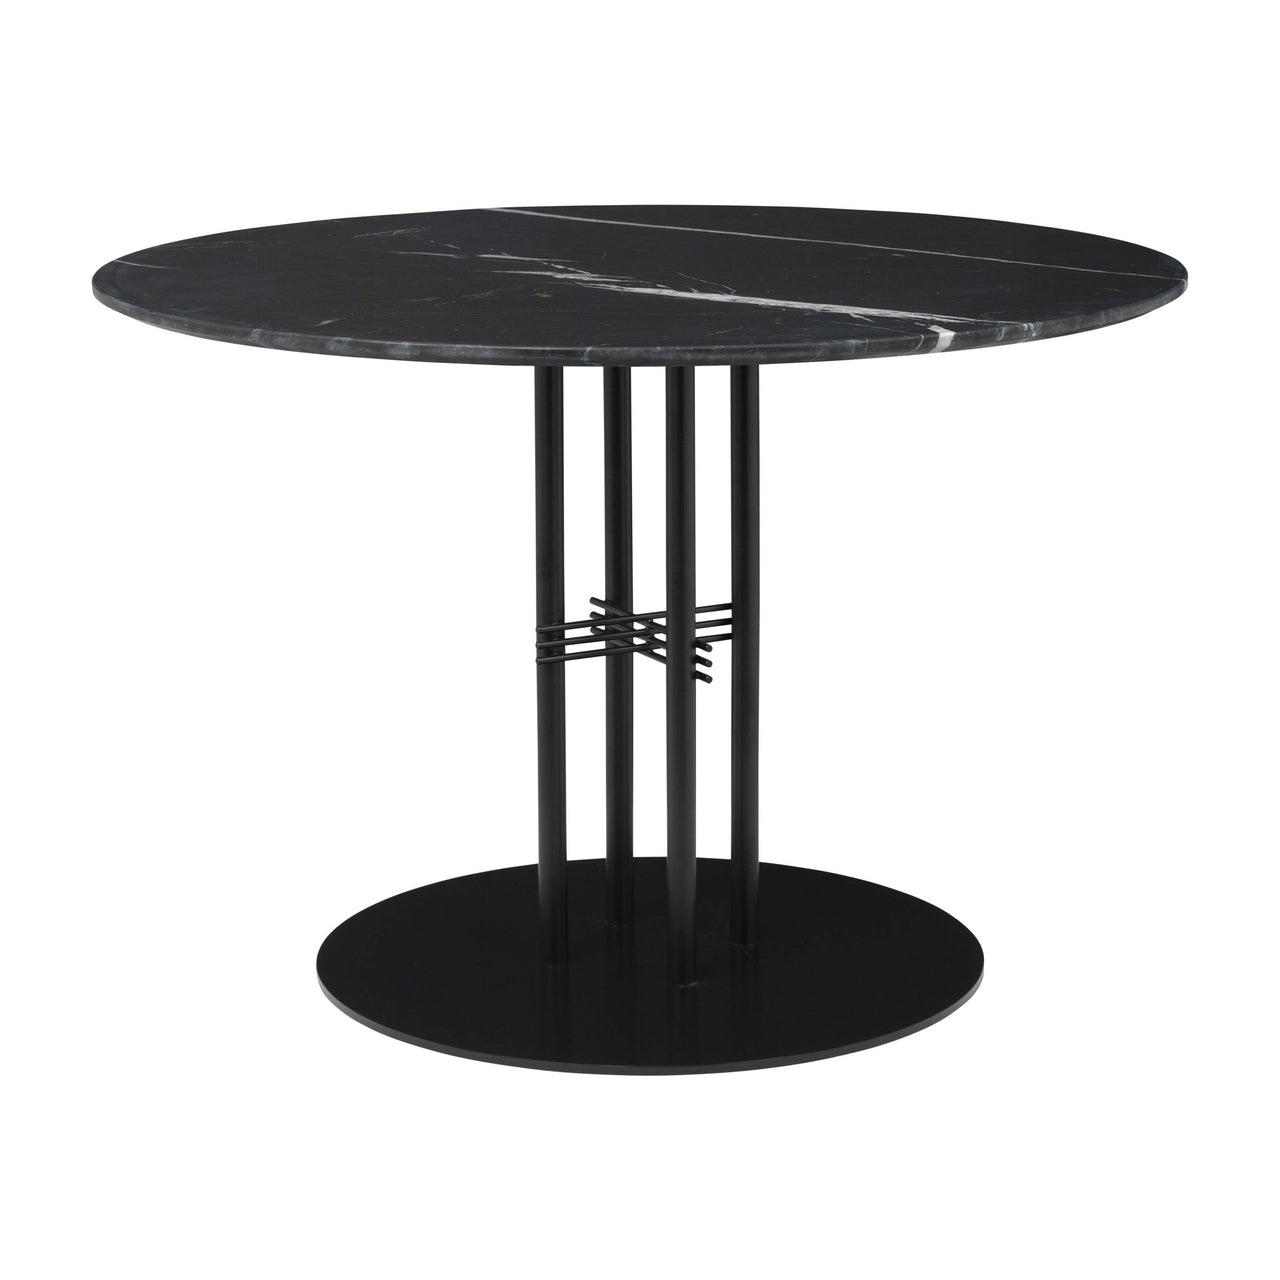 TS Column Dining Table: Medium + Black Base + Black Marquina Marble